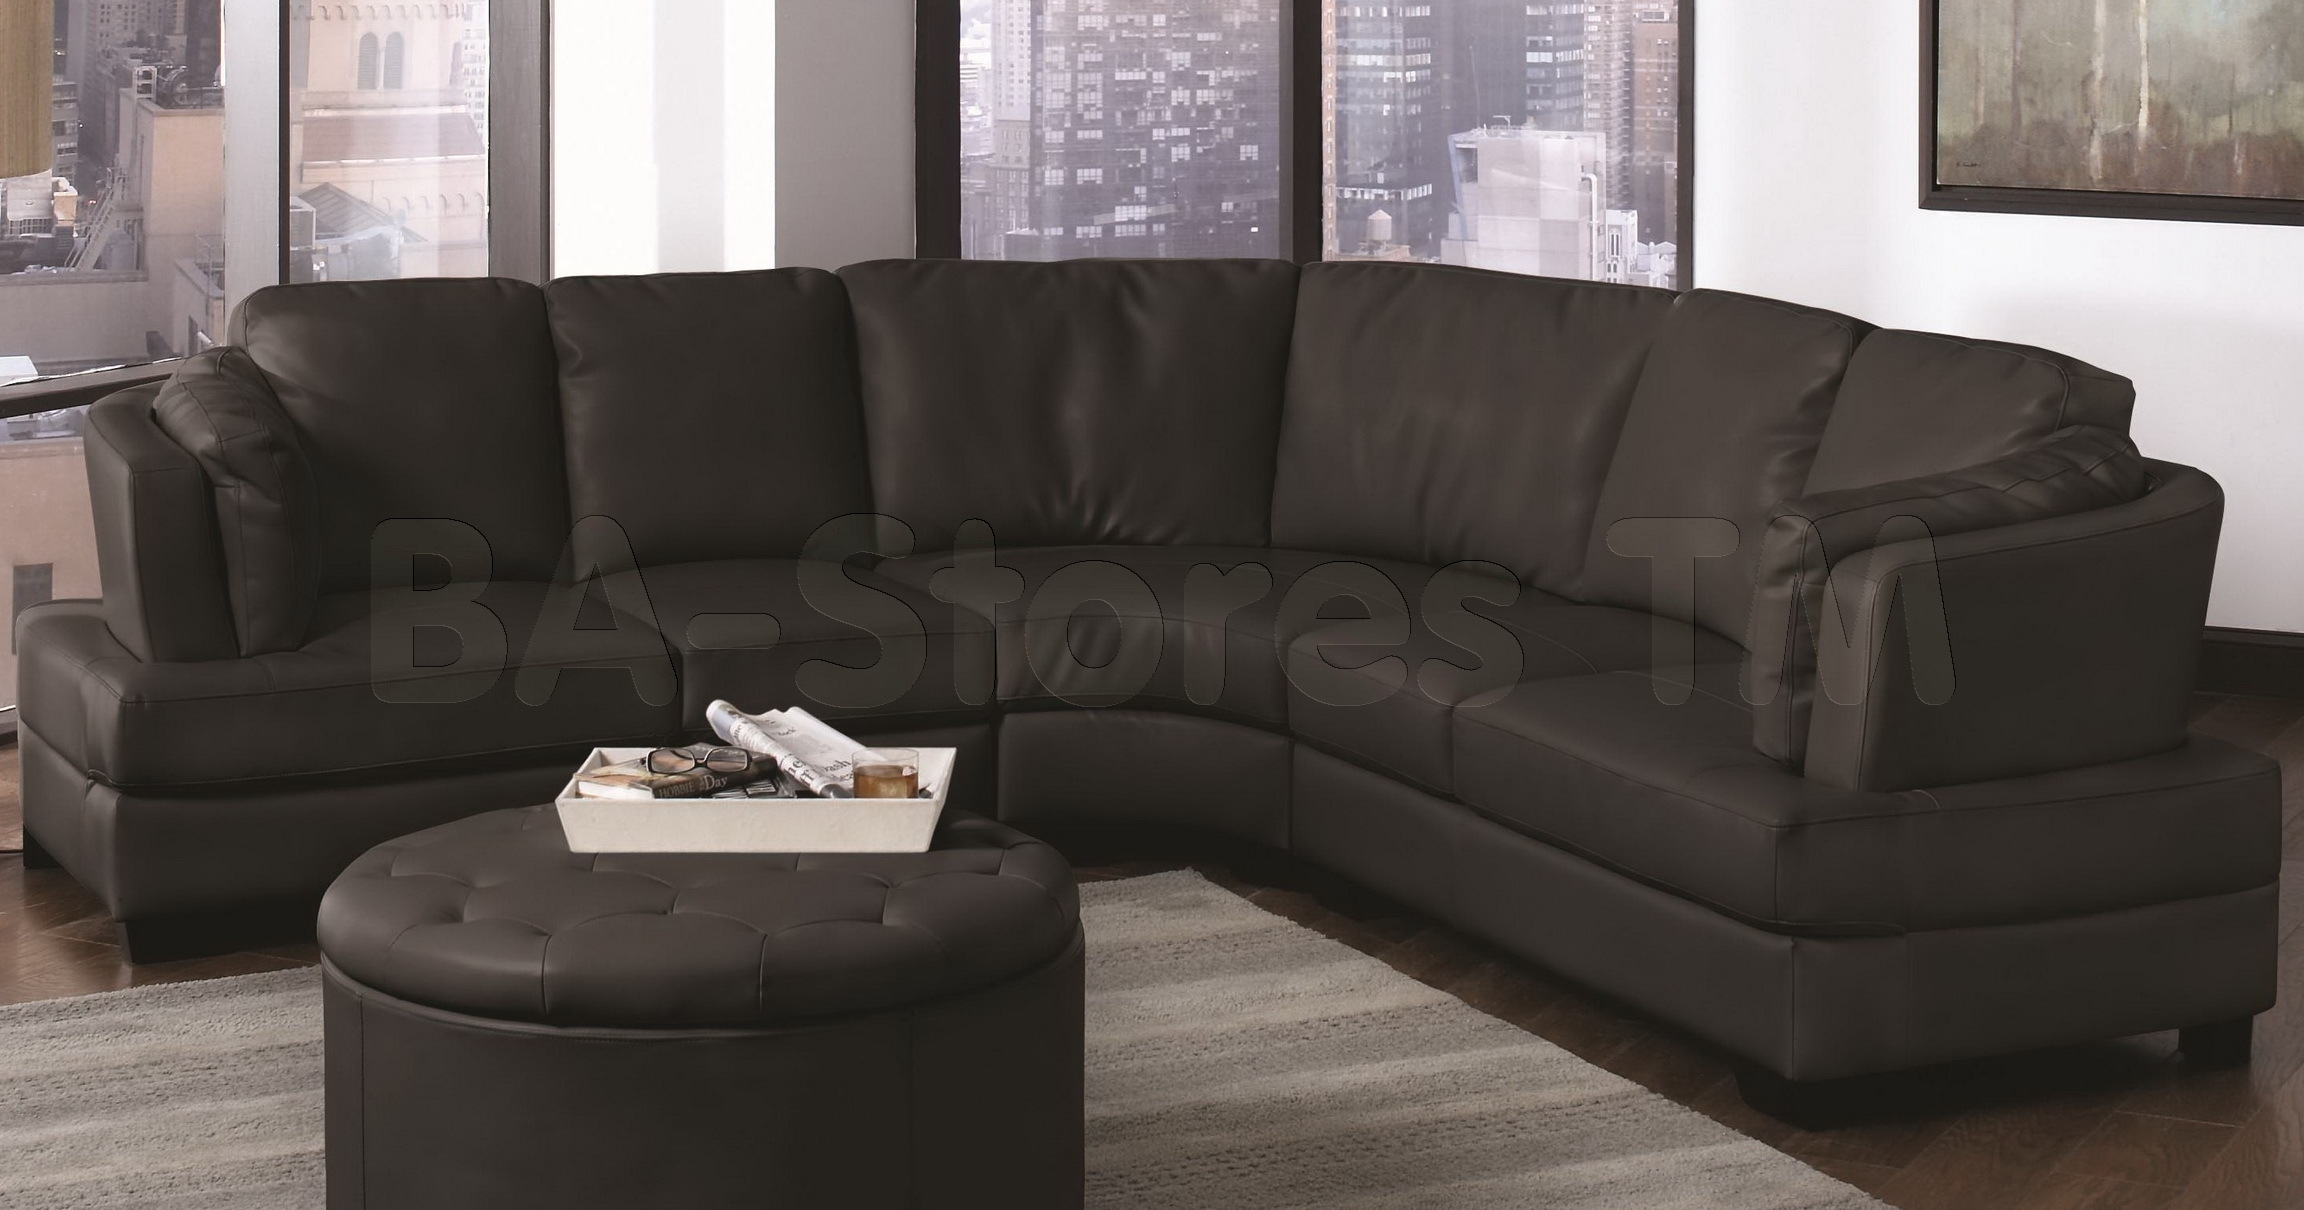 Trend Circular Sectional Sofa 57 With Additional Living Room Sofa For Circular Sectional Sofas (View 7 of 10)